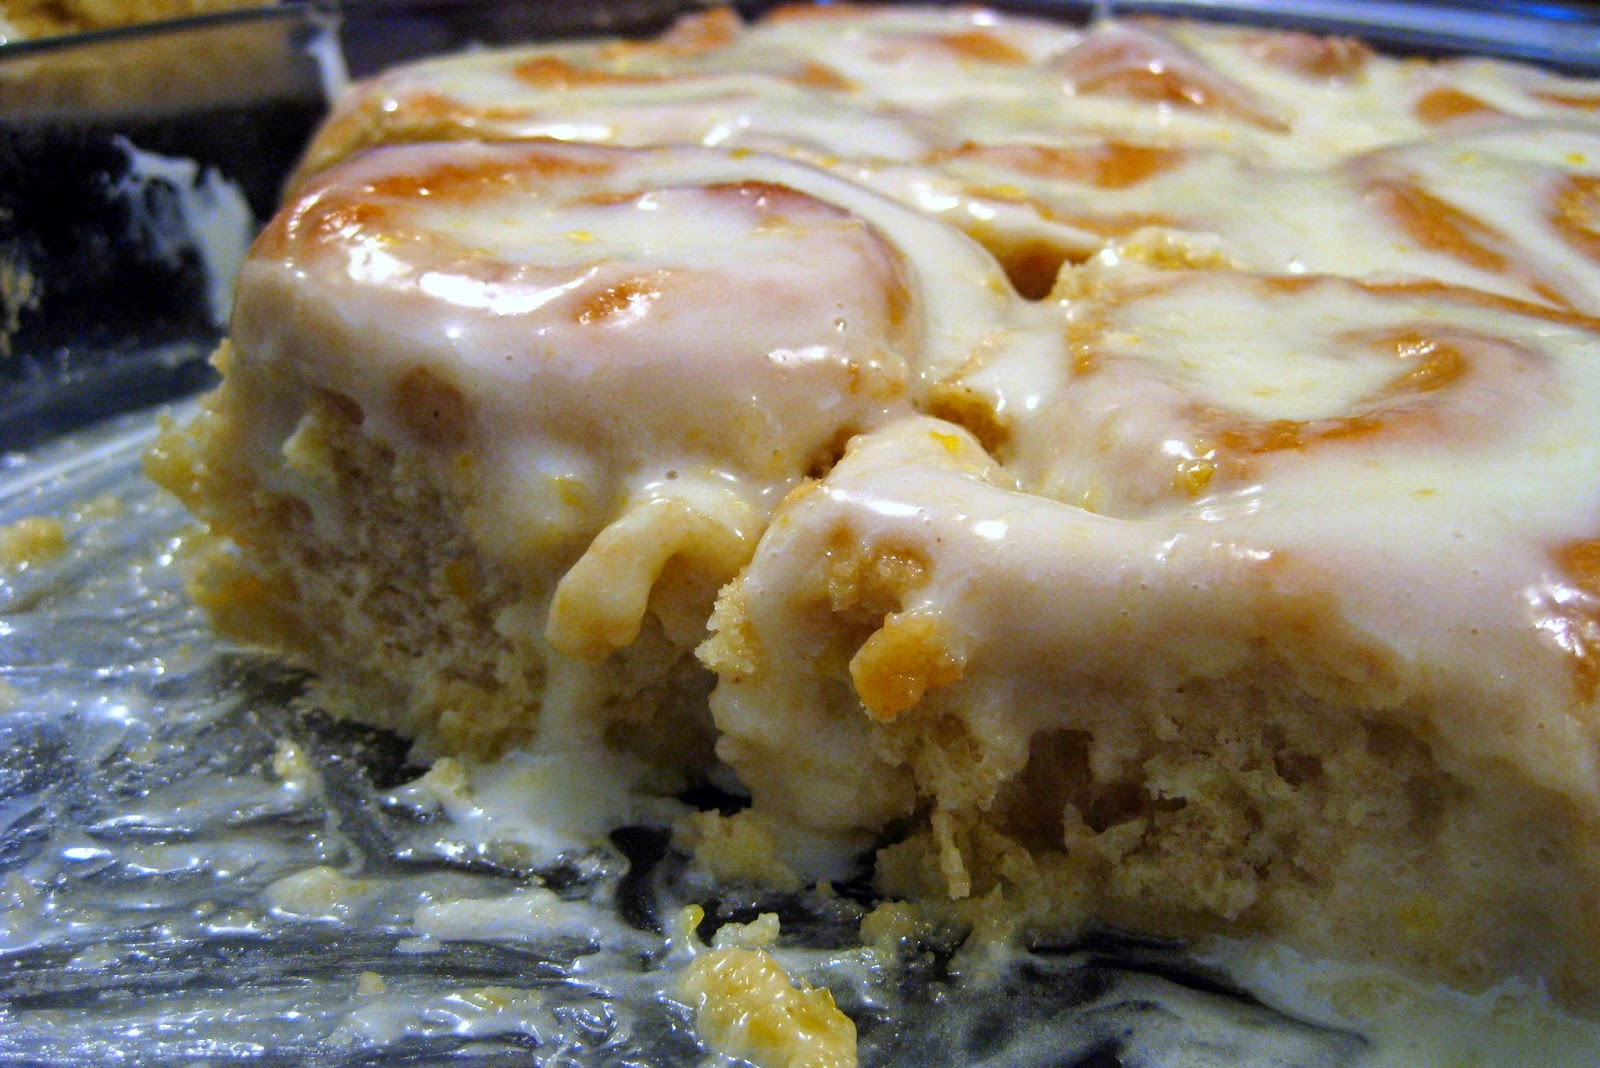 FOOD AND COOK : Sticky Lemon Rolls with Lemon Cream Cheese Glaze